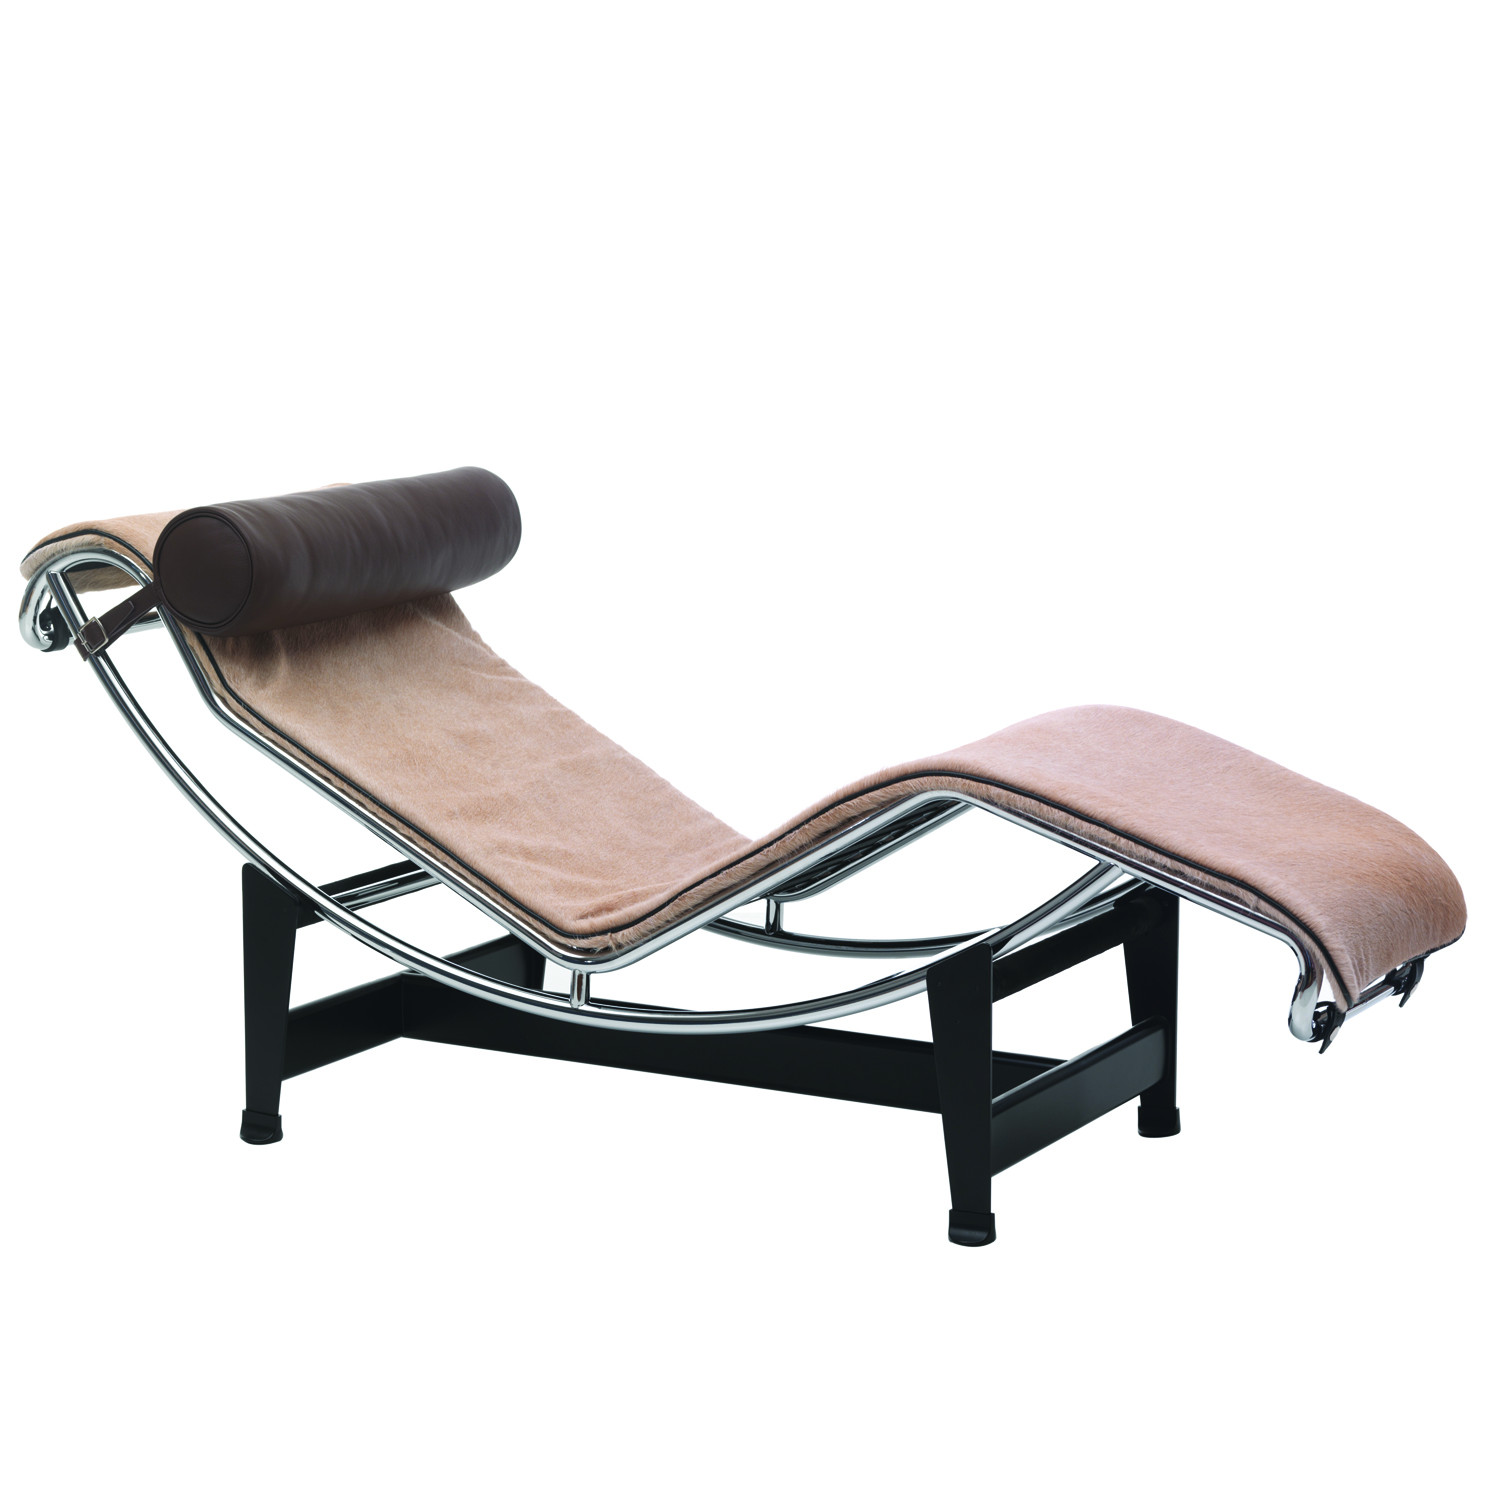 Lc4 chaise longue modern designer apres furniture for Chaise longue lc4